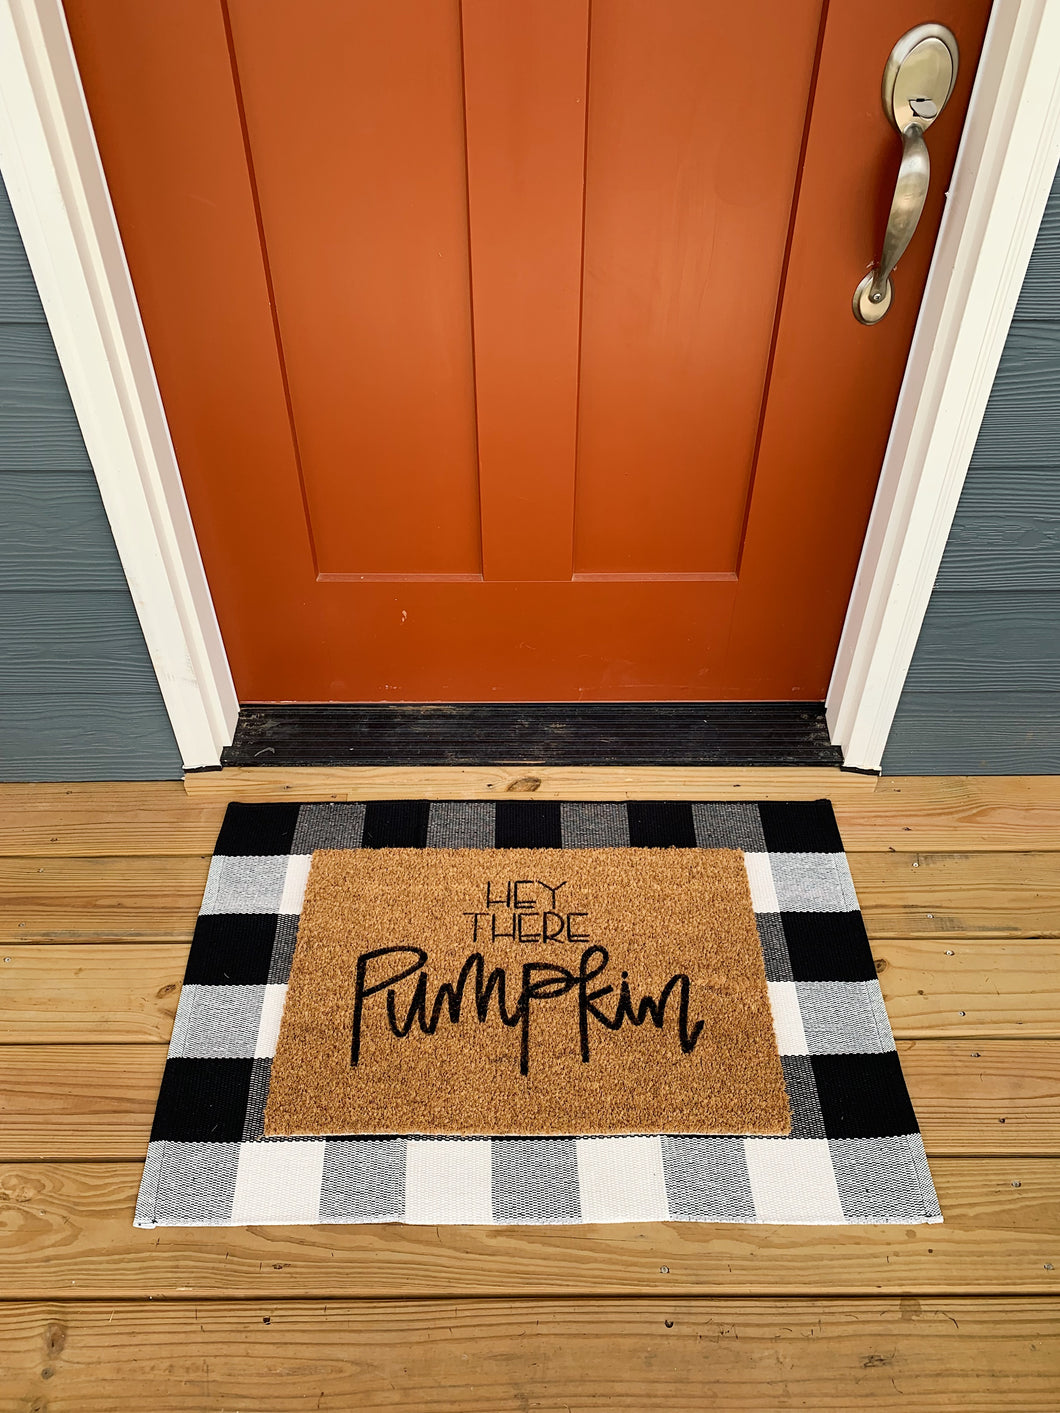 Hey There Pumpkin Hand Painted Doormat